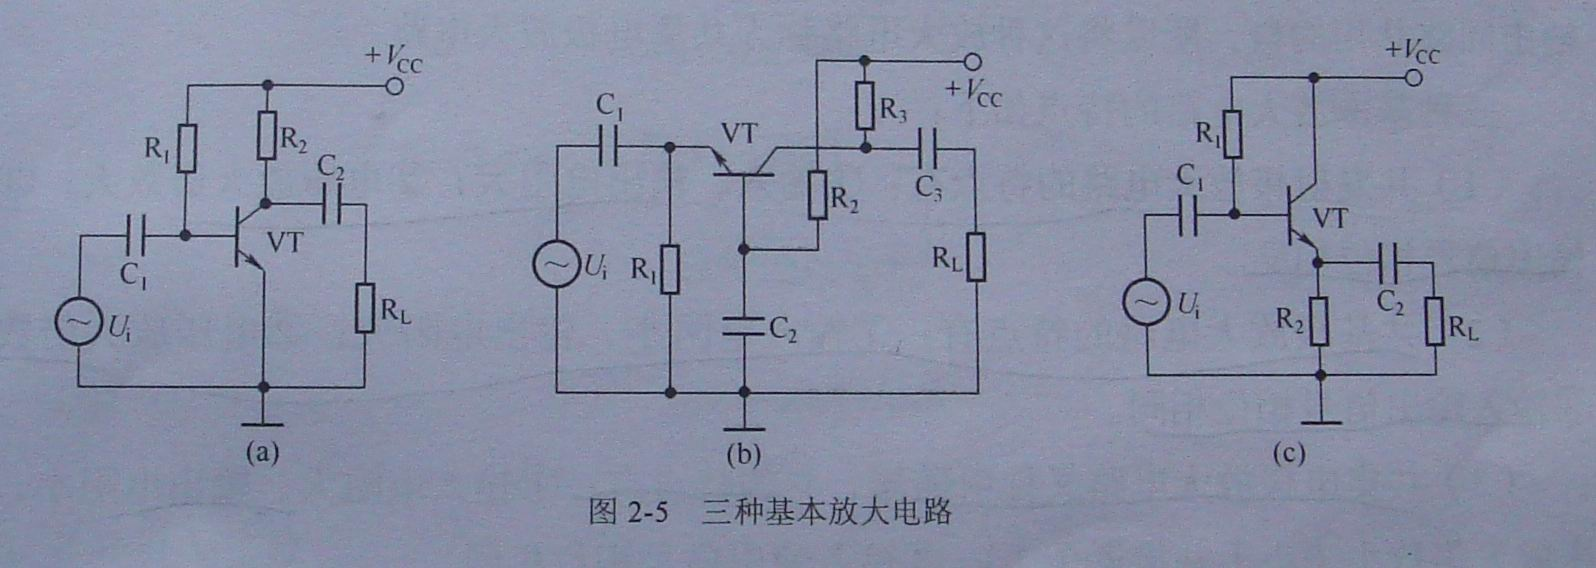 What are the principles needed to introduce negative feedback in the amplifier circuit